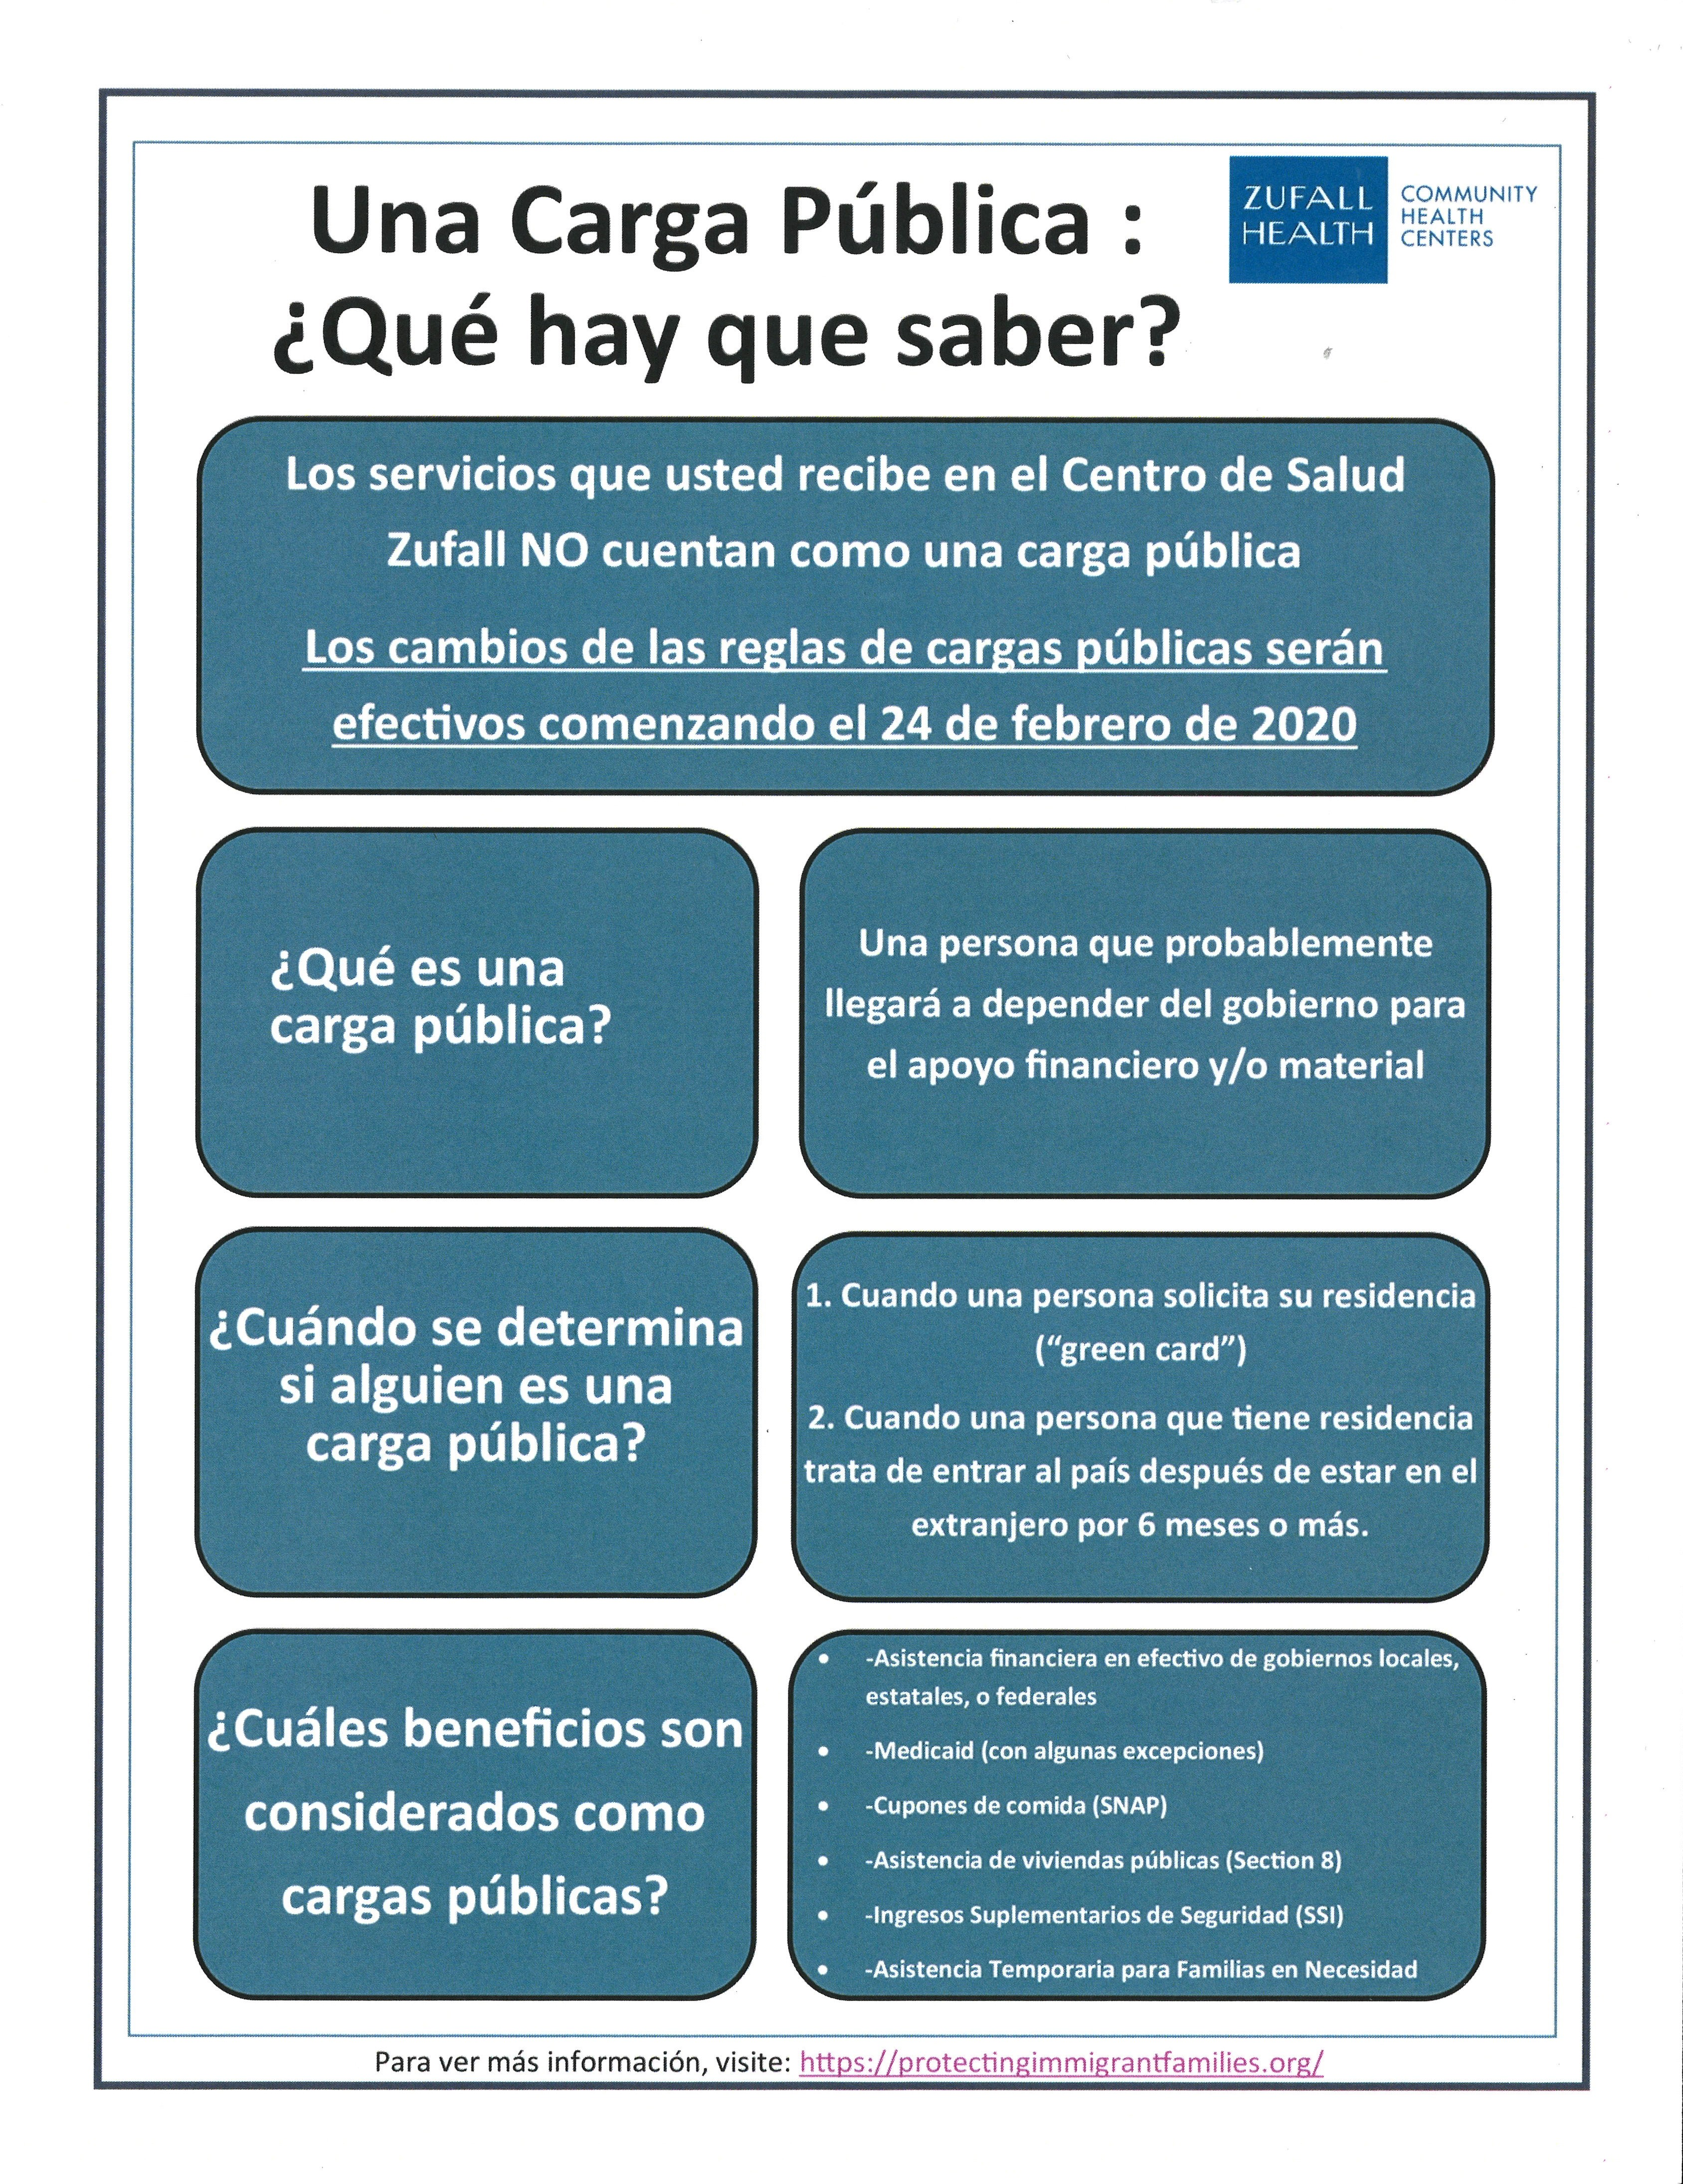 Public Charge: Things to Know flyer in Spanish